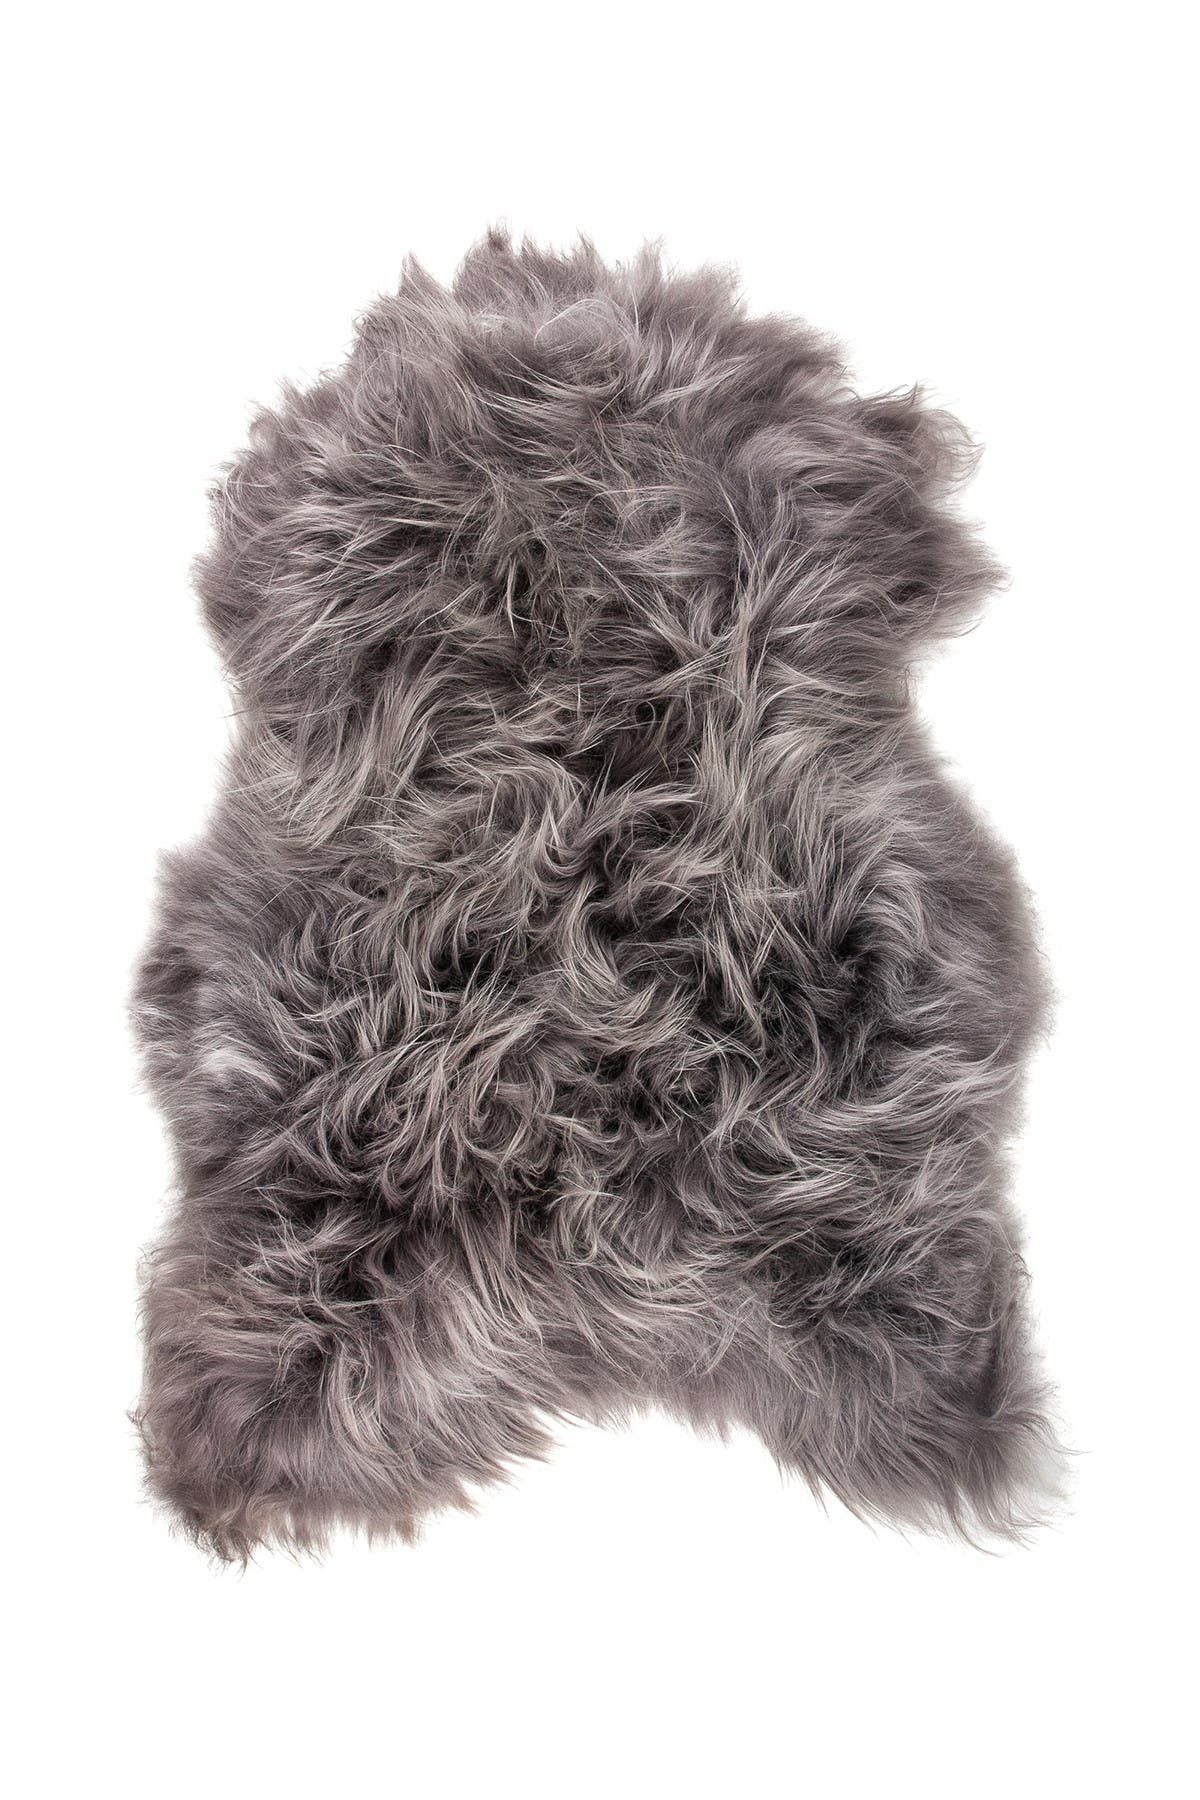 Image of Natural Icelandic Genuine Genuine Sheepskin Shearling Shearling Long-Haired Rug - 2ft x 3ft - Grey Brisa